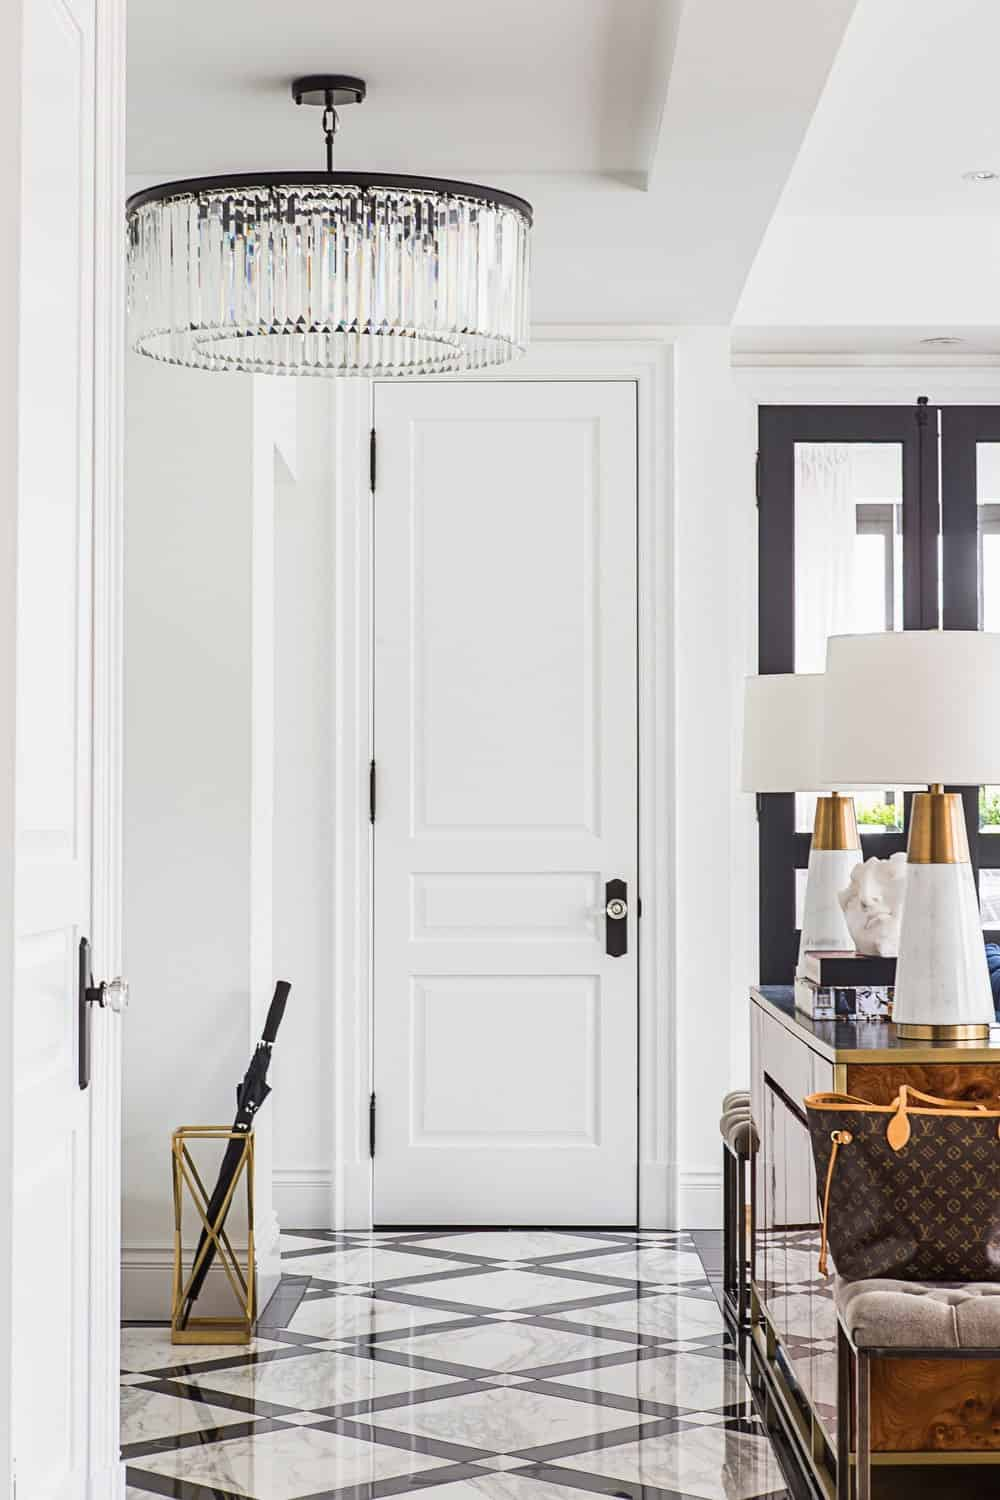 199 Foyer Design Ideas For 2019 All Colors Styles And Sizes